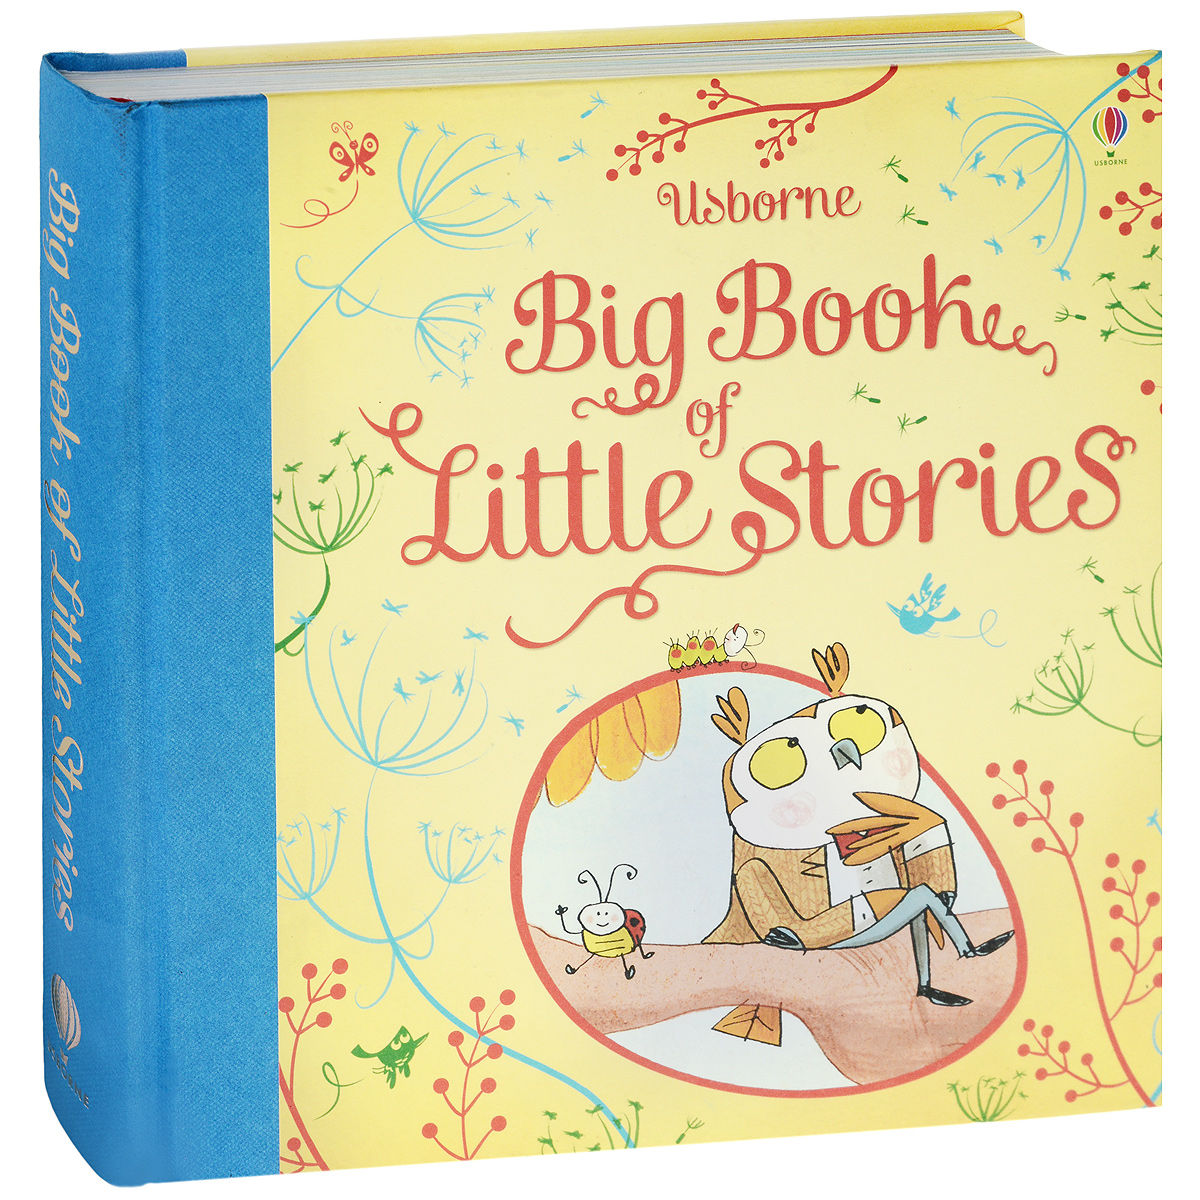 Big Book of Little Stories the gingerbread man